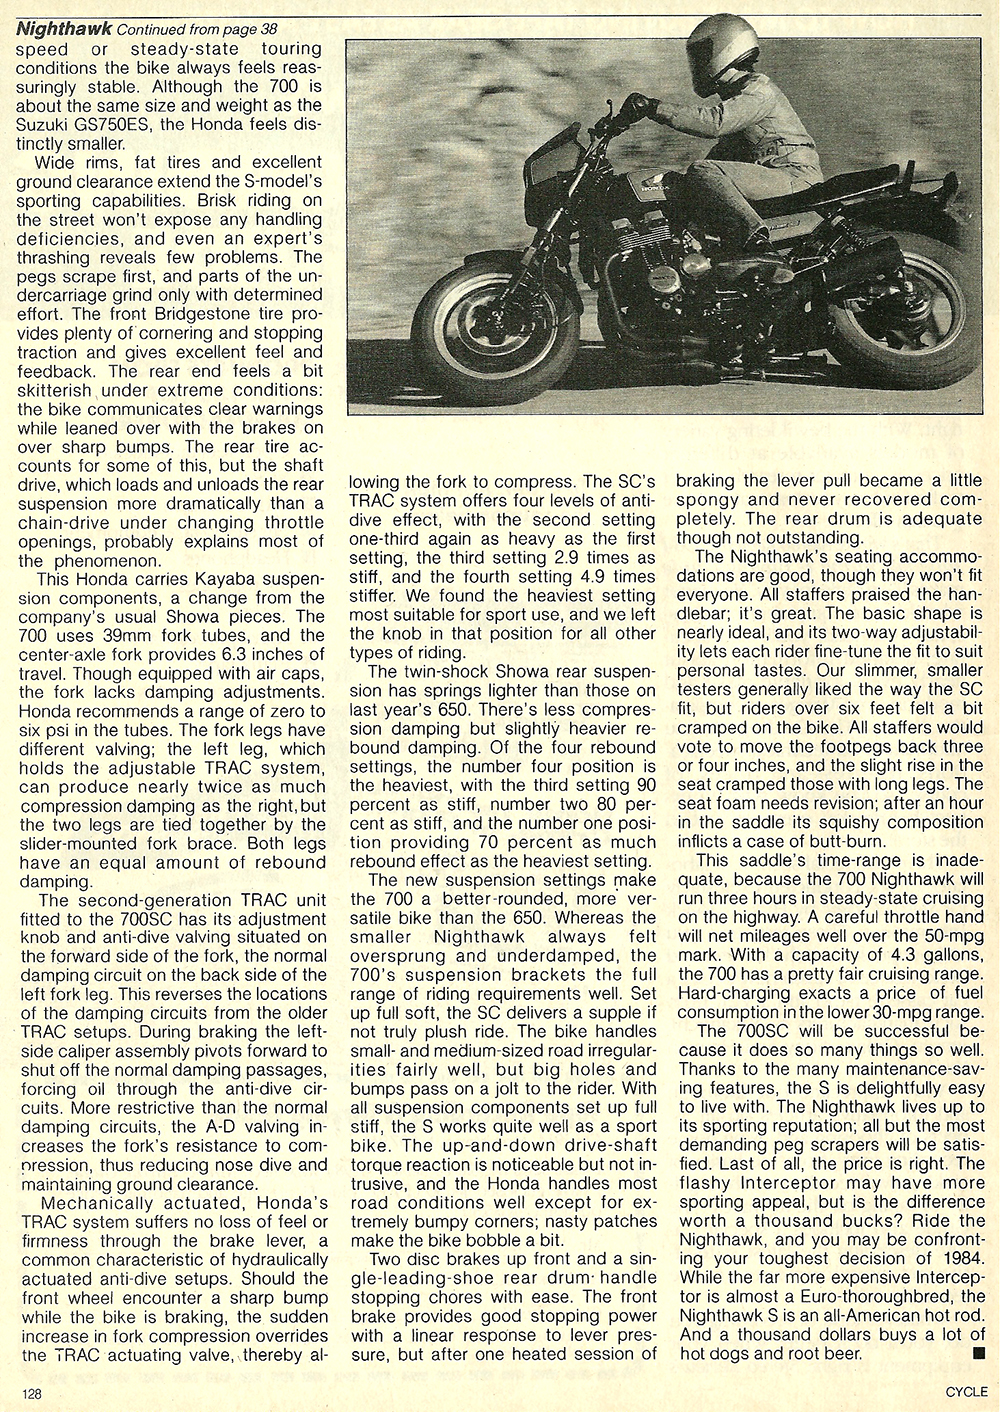 1984 Honda CB700SC Nighthawk S road test 8.jpg